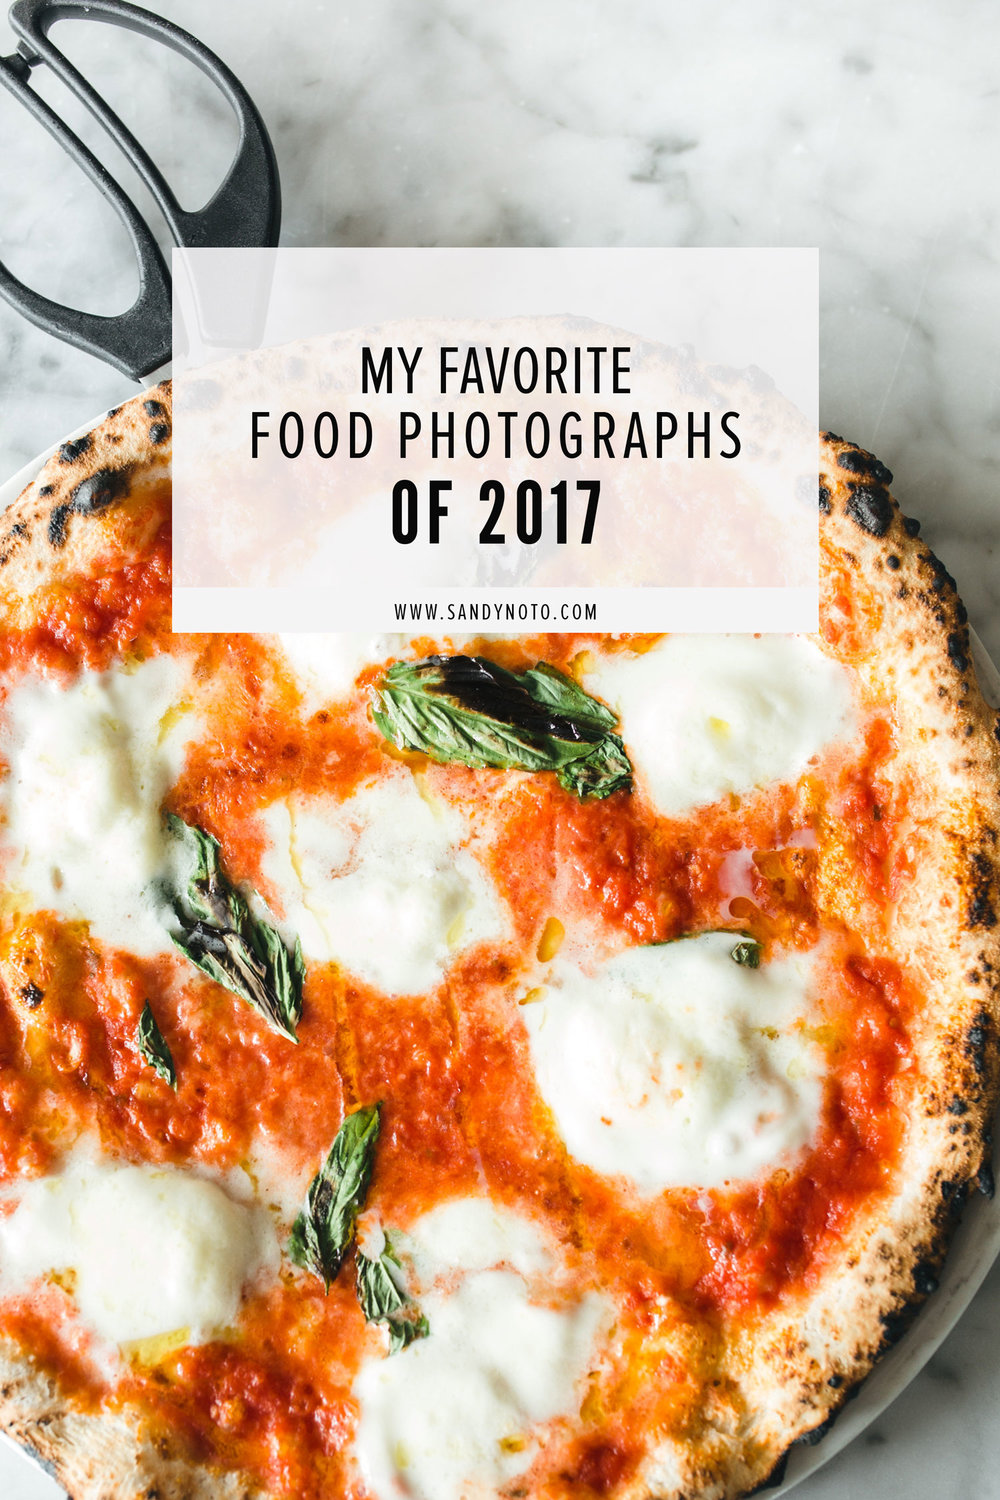 My Favorite Food Photographs from 2017